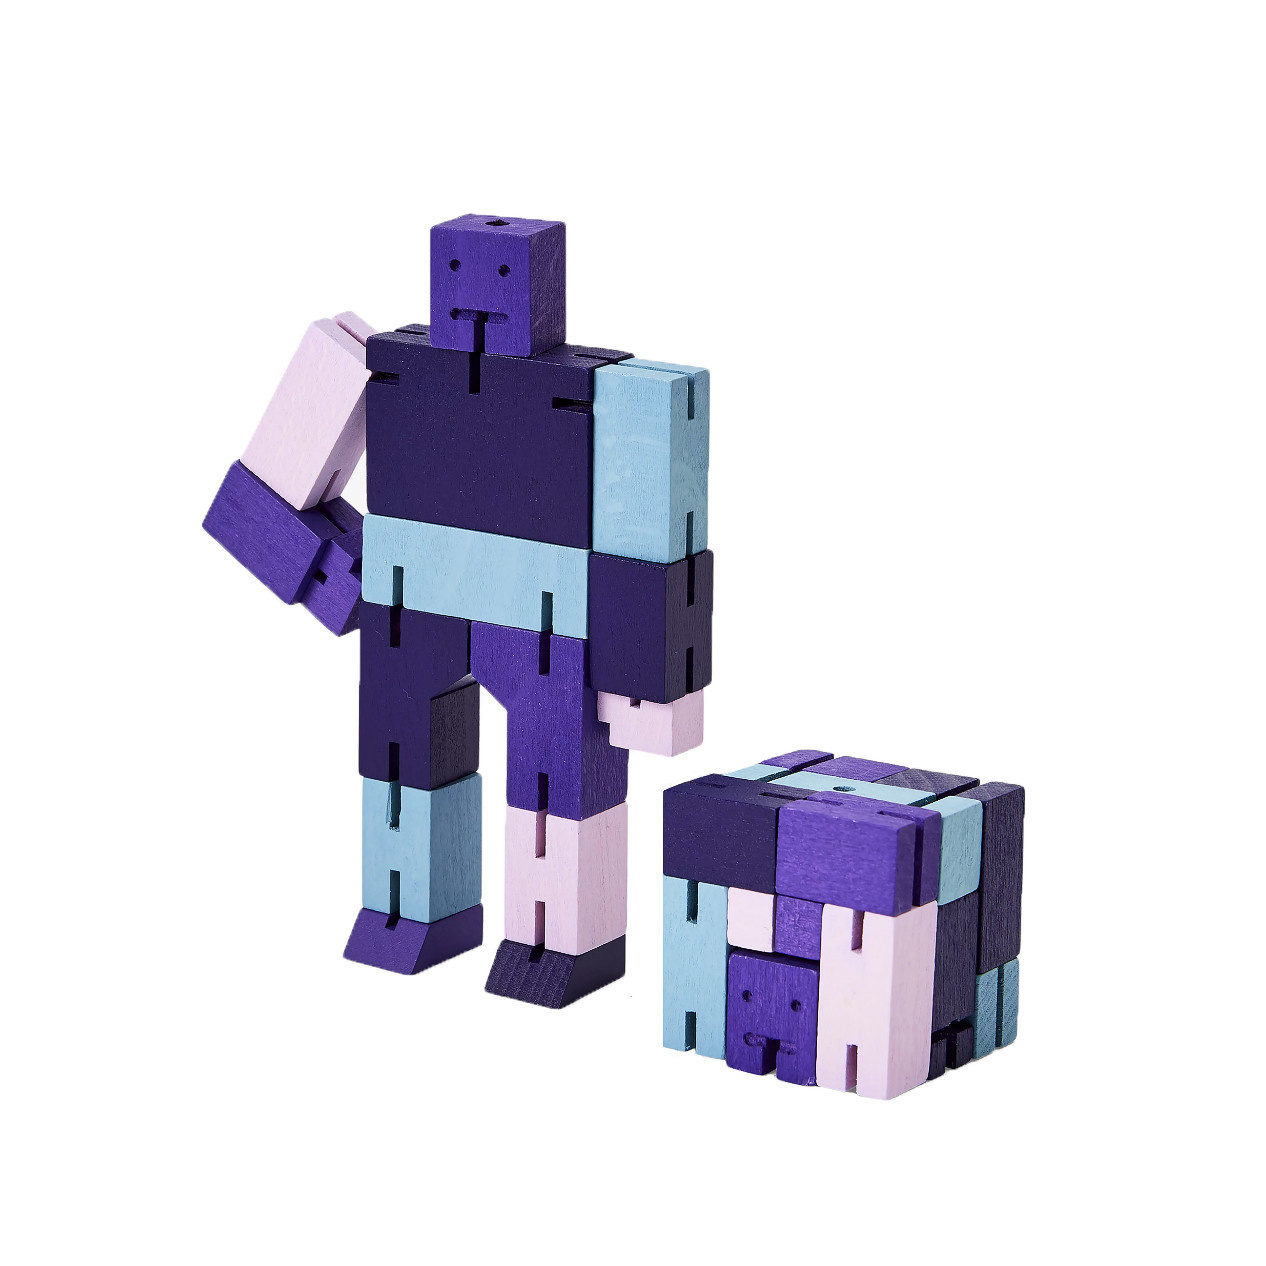 Cubebot Capsule Small - Purple Multi